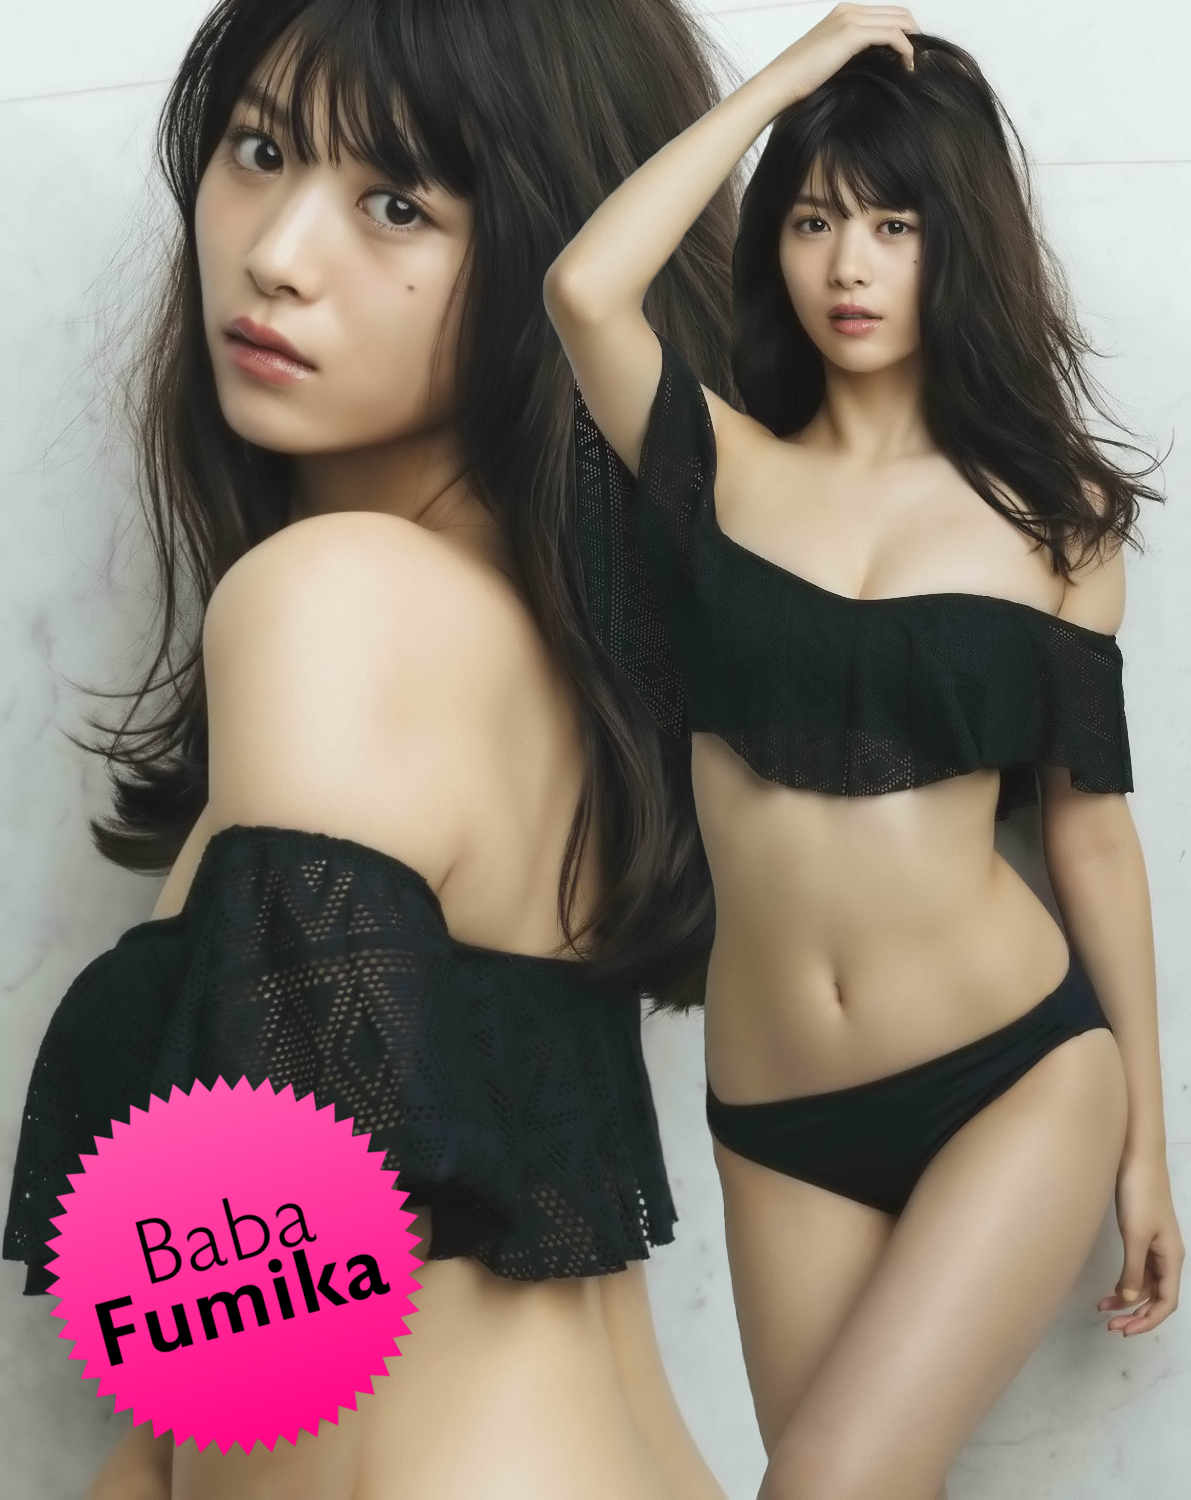 Fumika Baba Pictures 馬場 ふみか | baba fumika | diversity in the modelling world